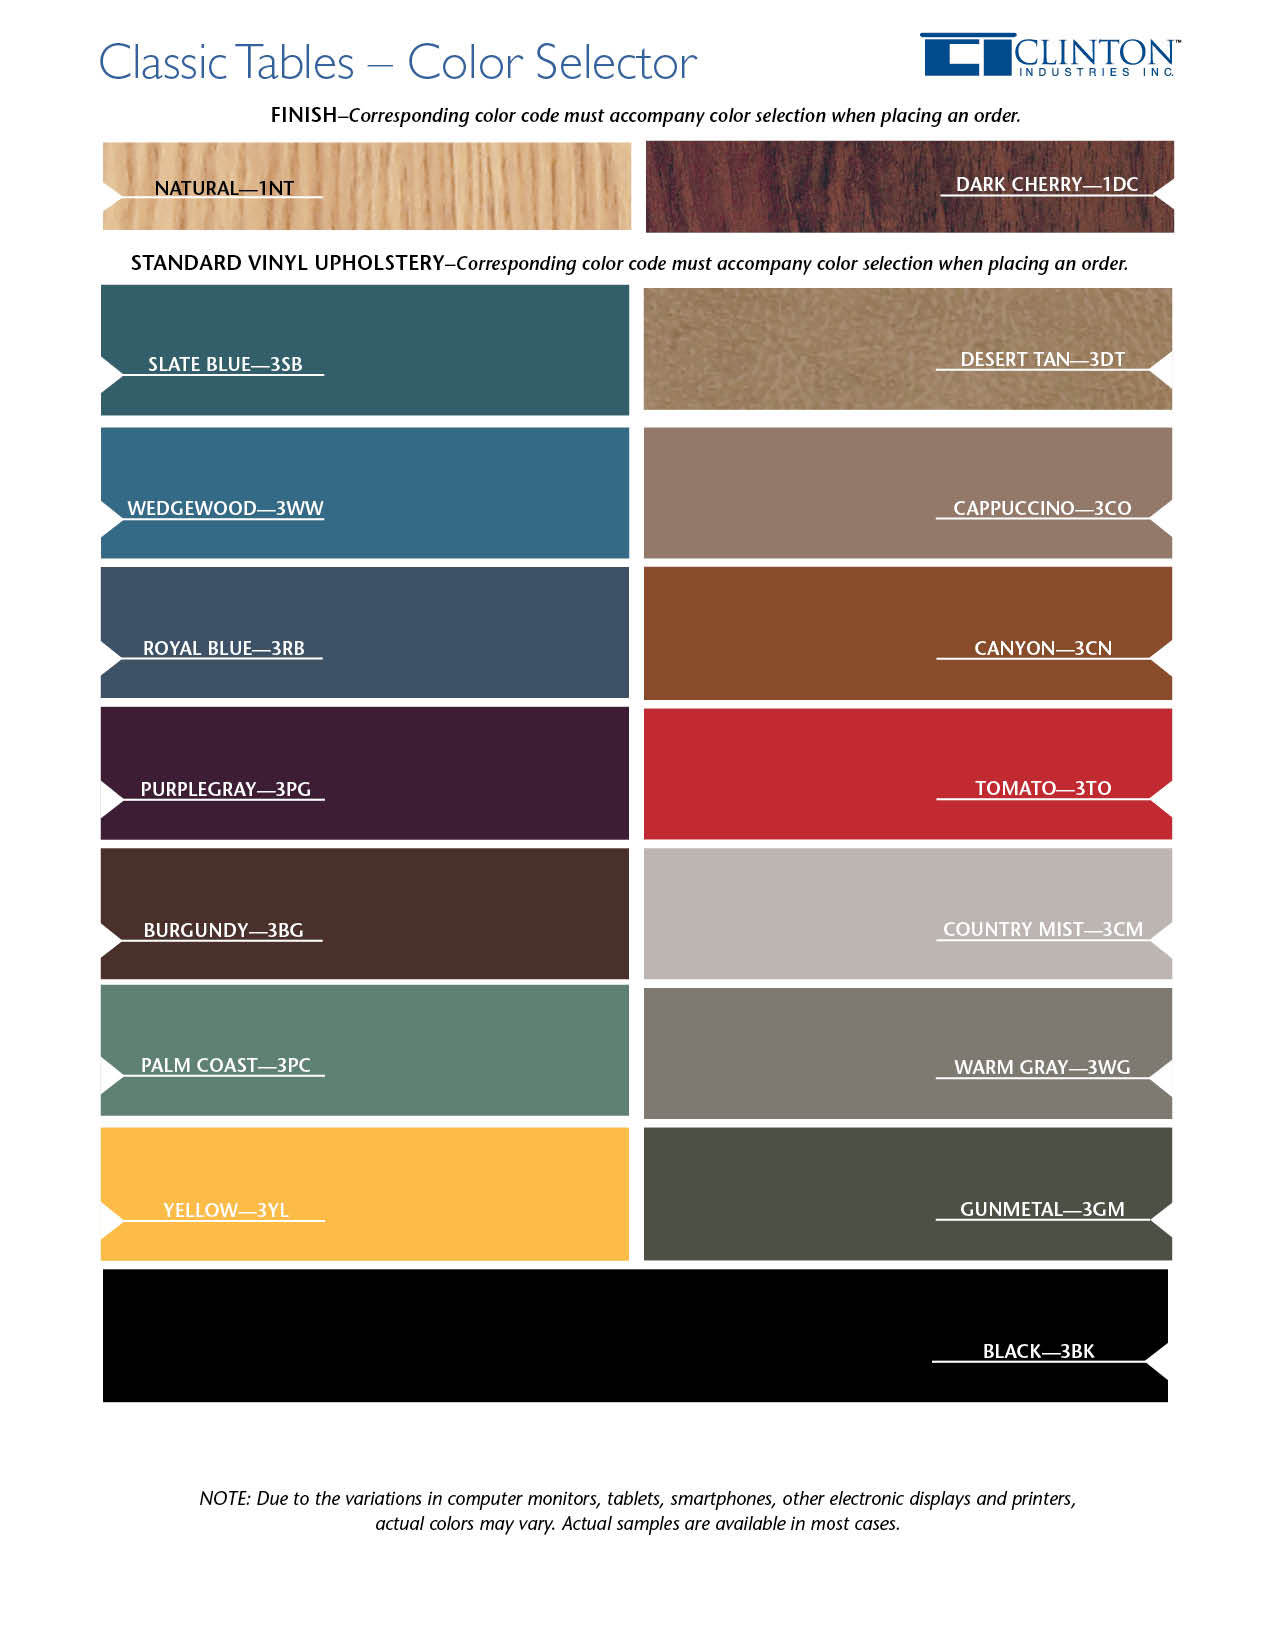 Classic Tables Color Selector